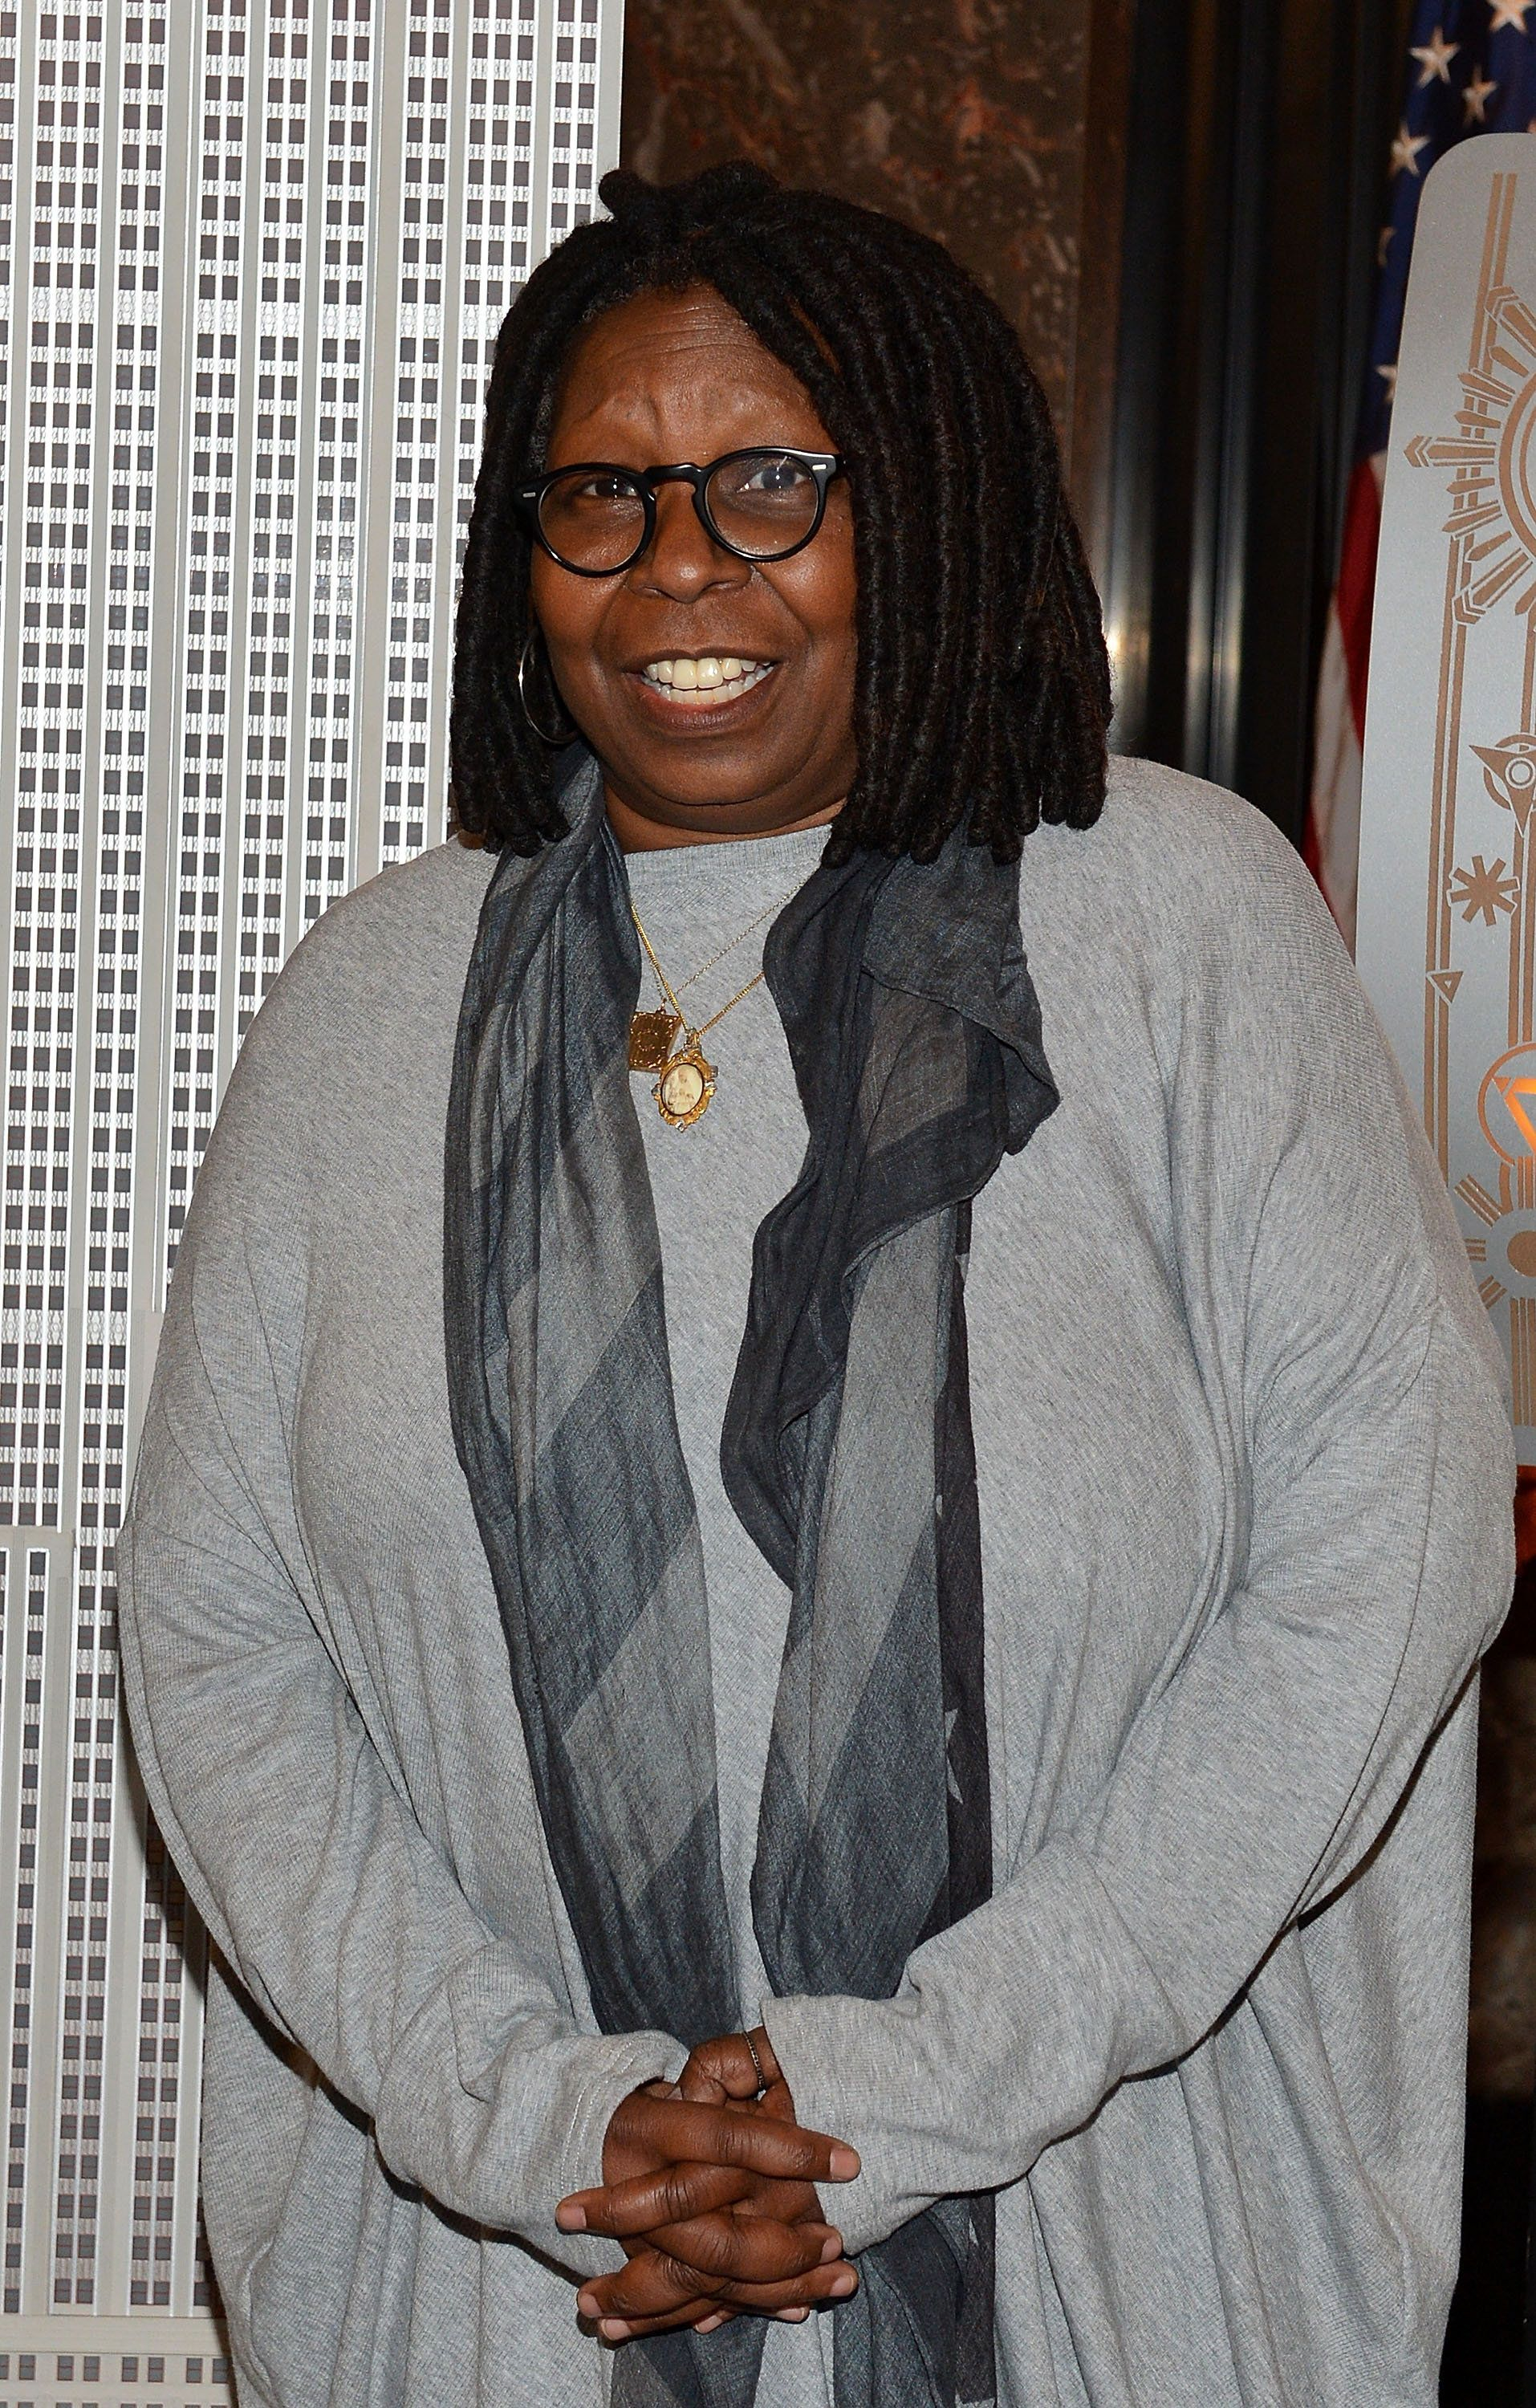 NEW YORK, NY - NOVEMBER 30:  Whoopi Goldberg attends a lighting ceremony at The Empire State Building in honor of World AIDS Day on November 30, 2015 in New York City.  (Photo by Slaven Vlasic/Getty Images)